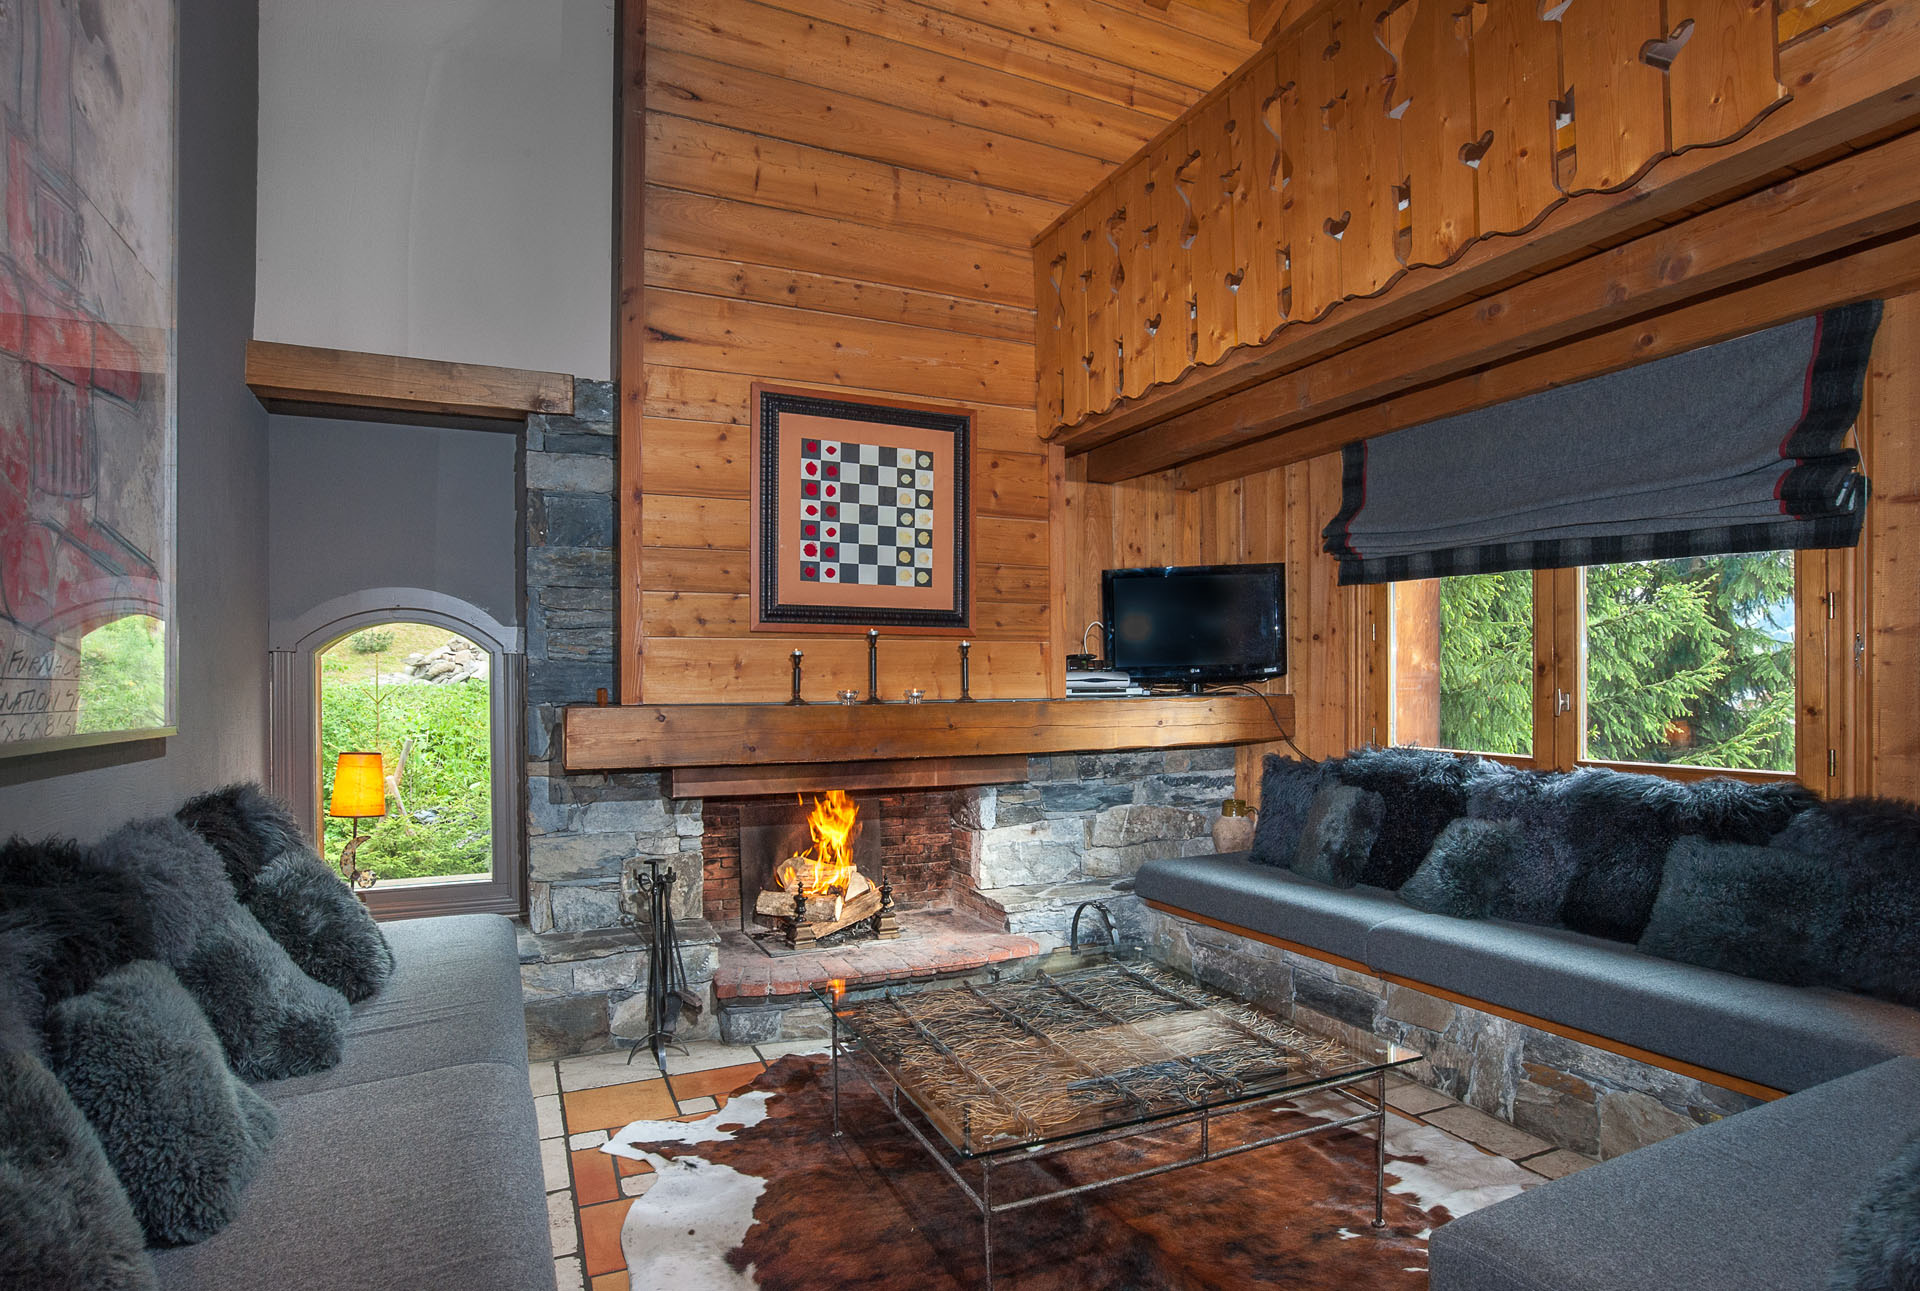 Living Room With Fireplace In 3 Vallées Chalet